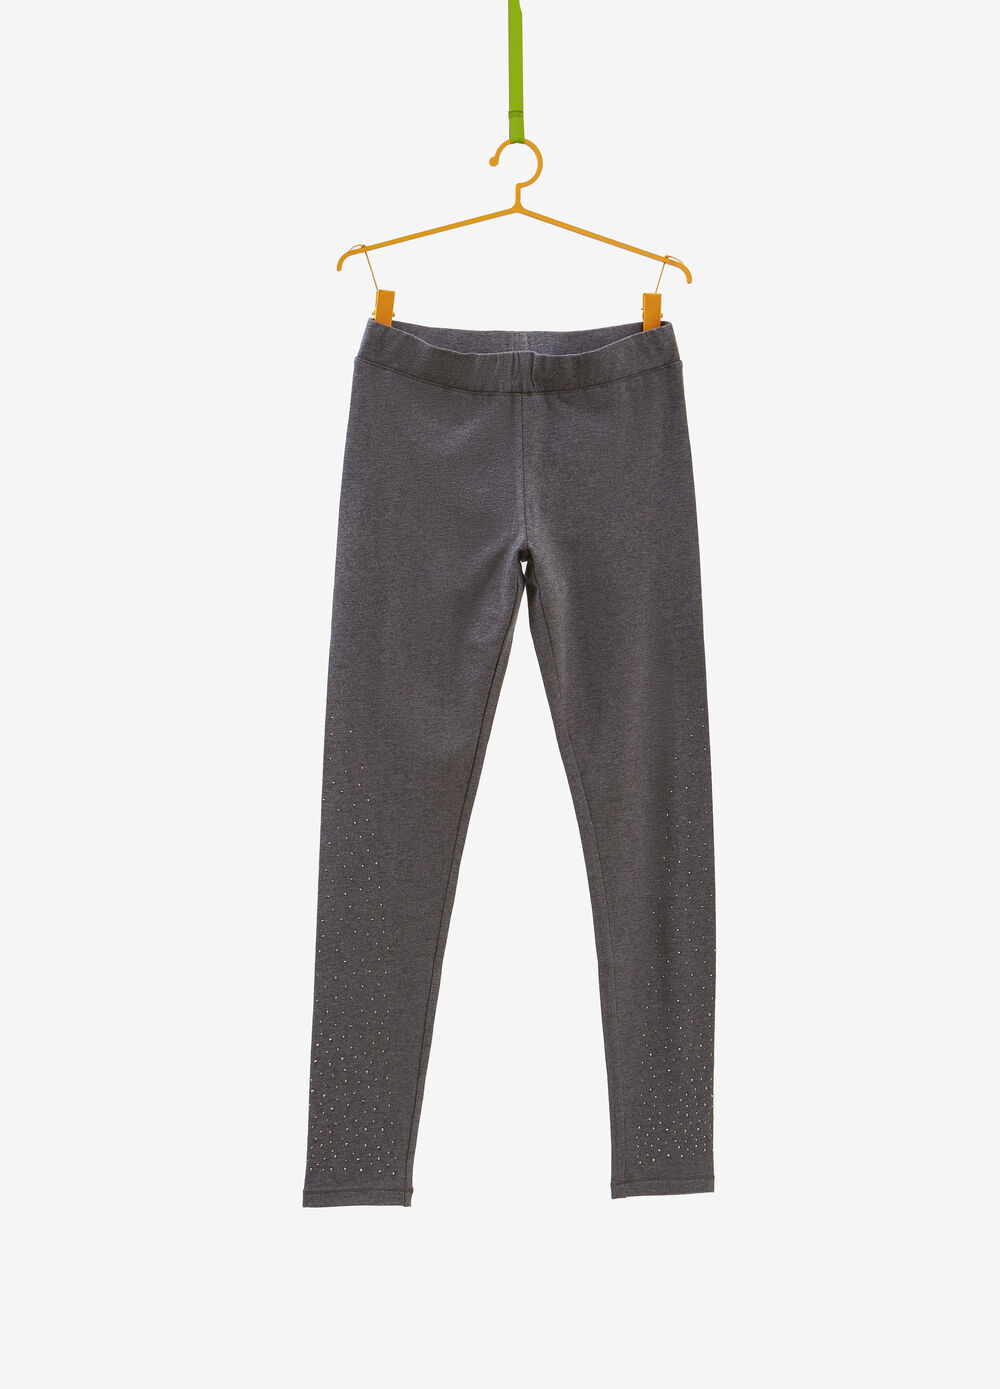 Stretch cotton and viscose leggings with studs